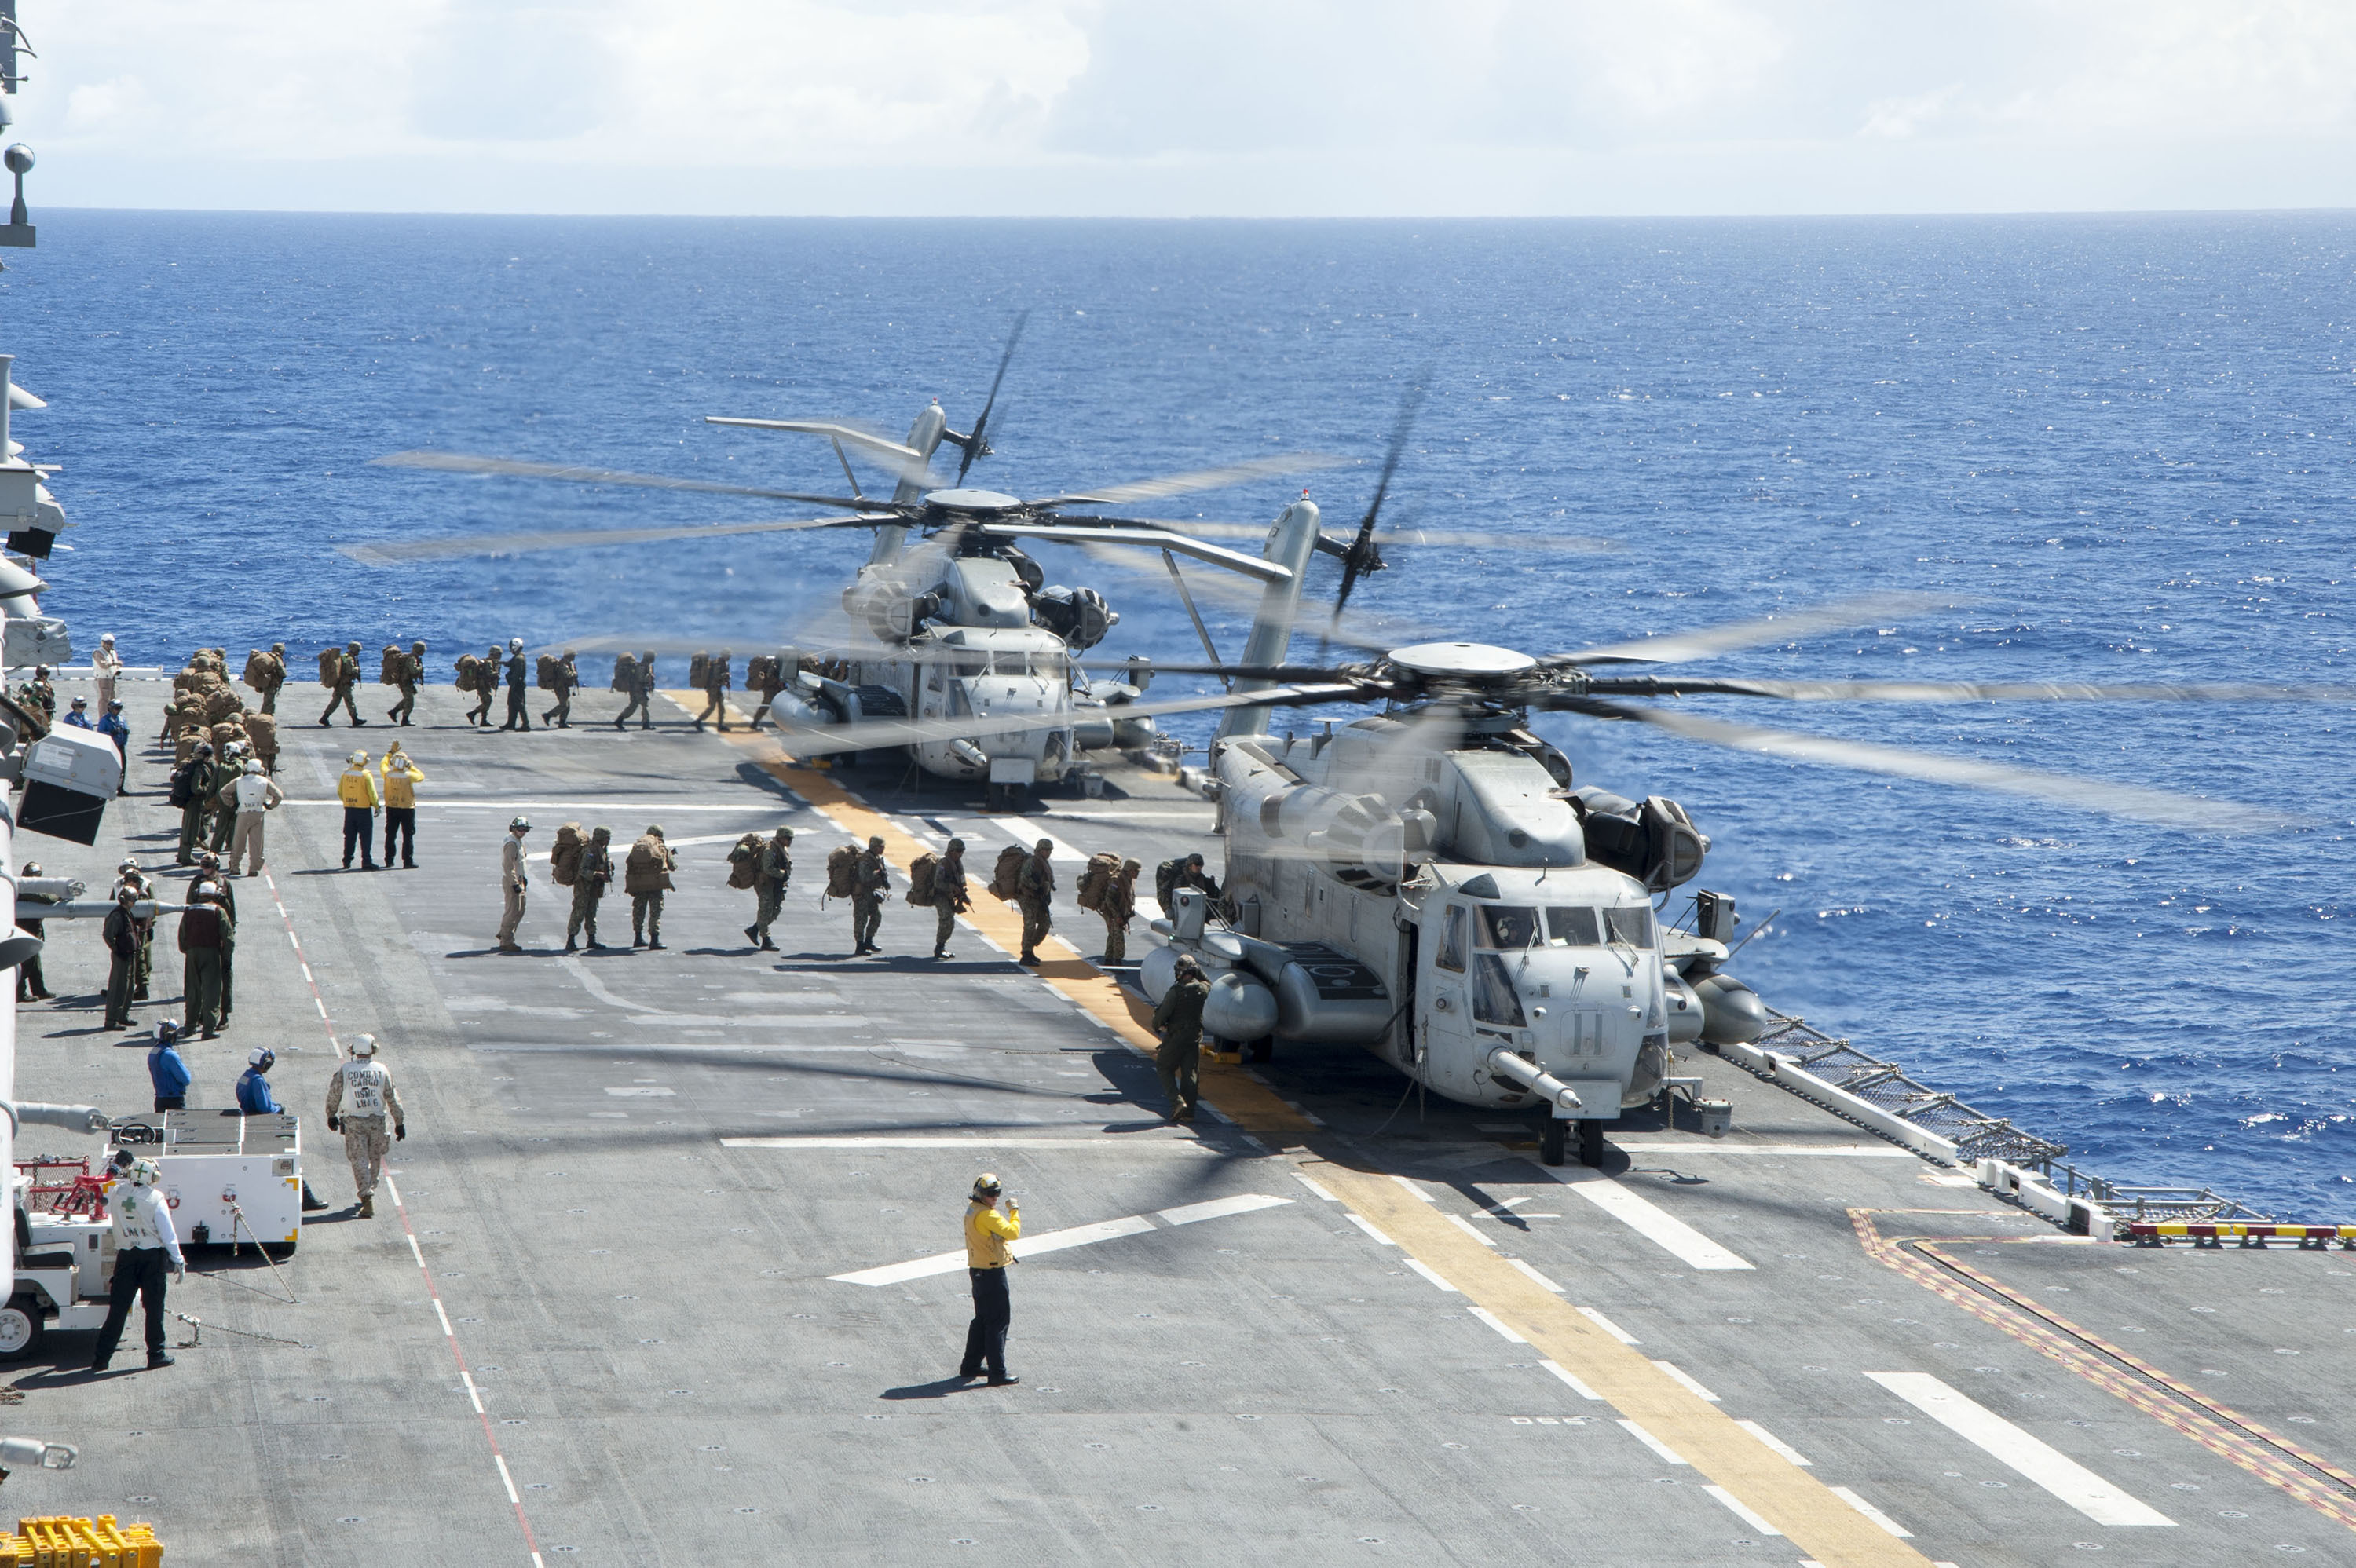 Marines assigned to 2nd Battalion, 3D Marine Regiment board two CH-53 Sea Stallion helicopters on the flight deck of amphibious assault ship USS America (LHA-6) as part of Rim of the Pacific 2016. US Navy photo.